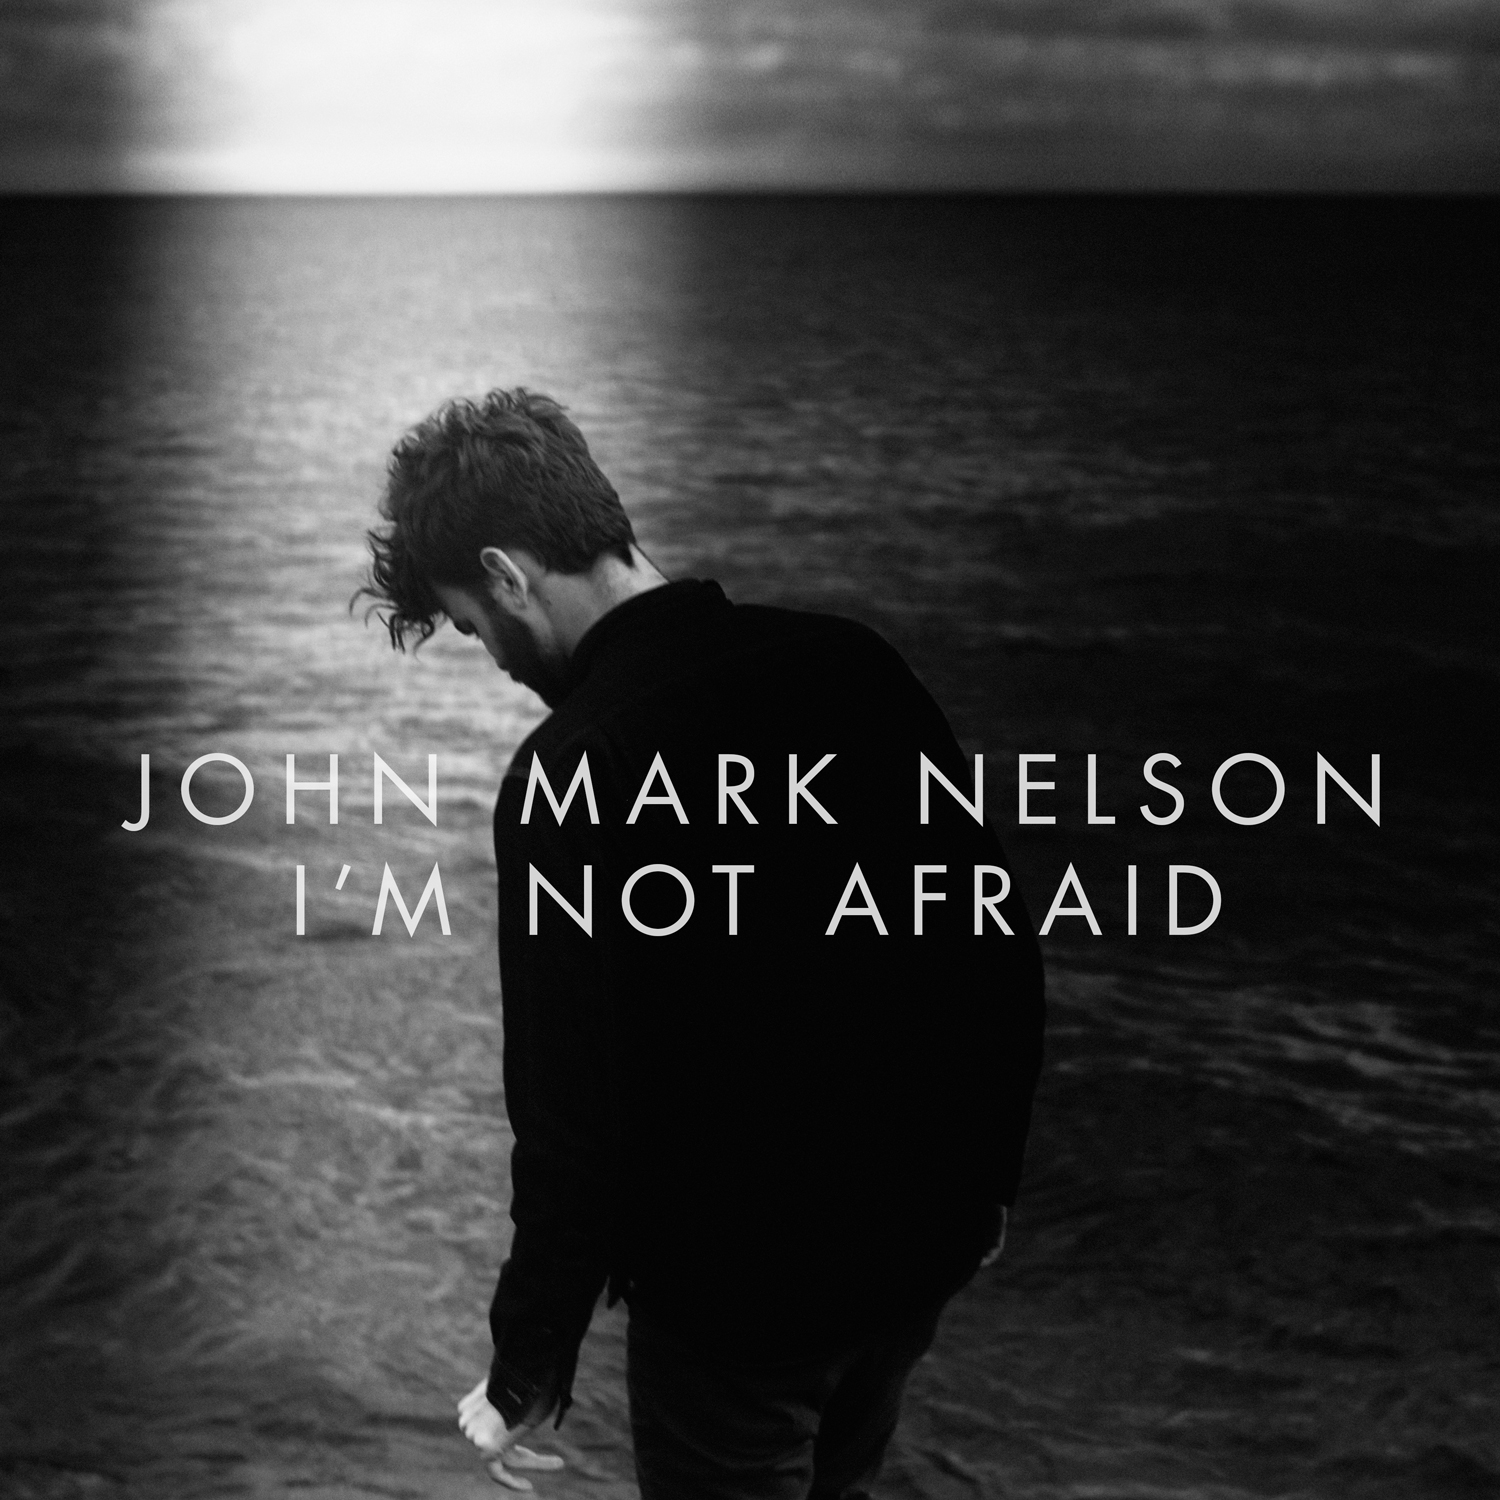 i'm not afraid - 2015, artist, co-producer